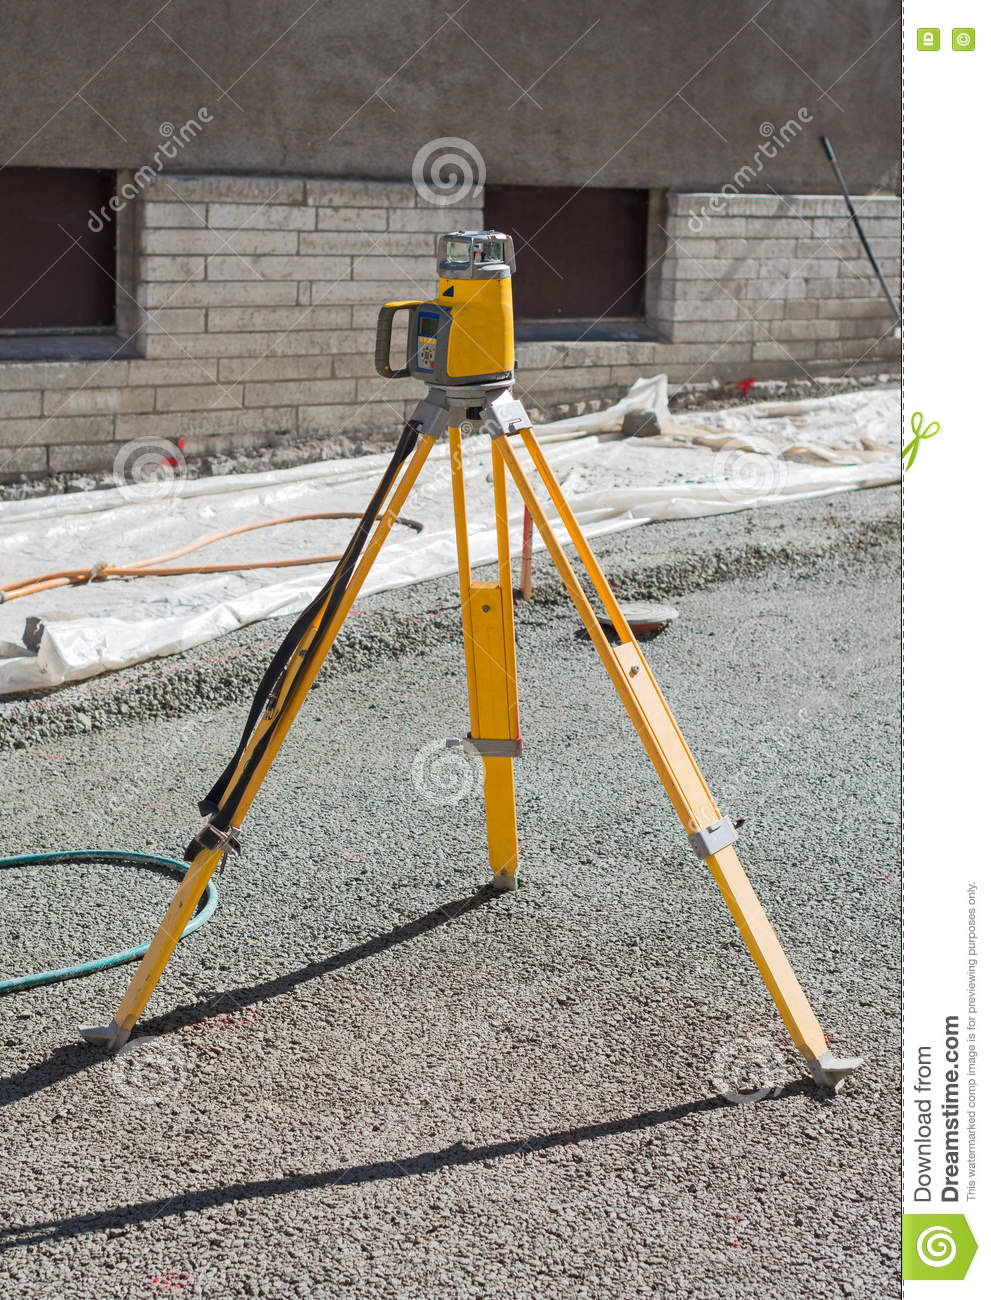 Geodetic device.